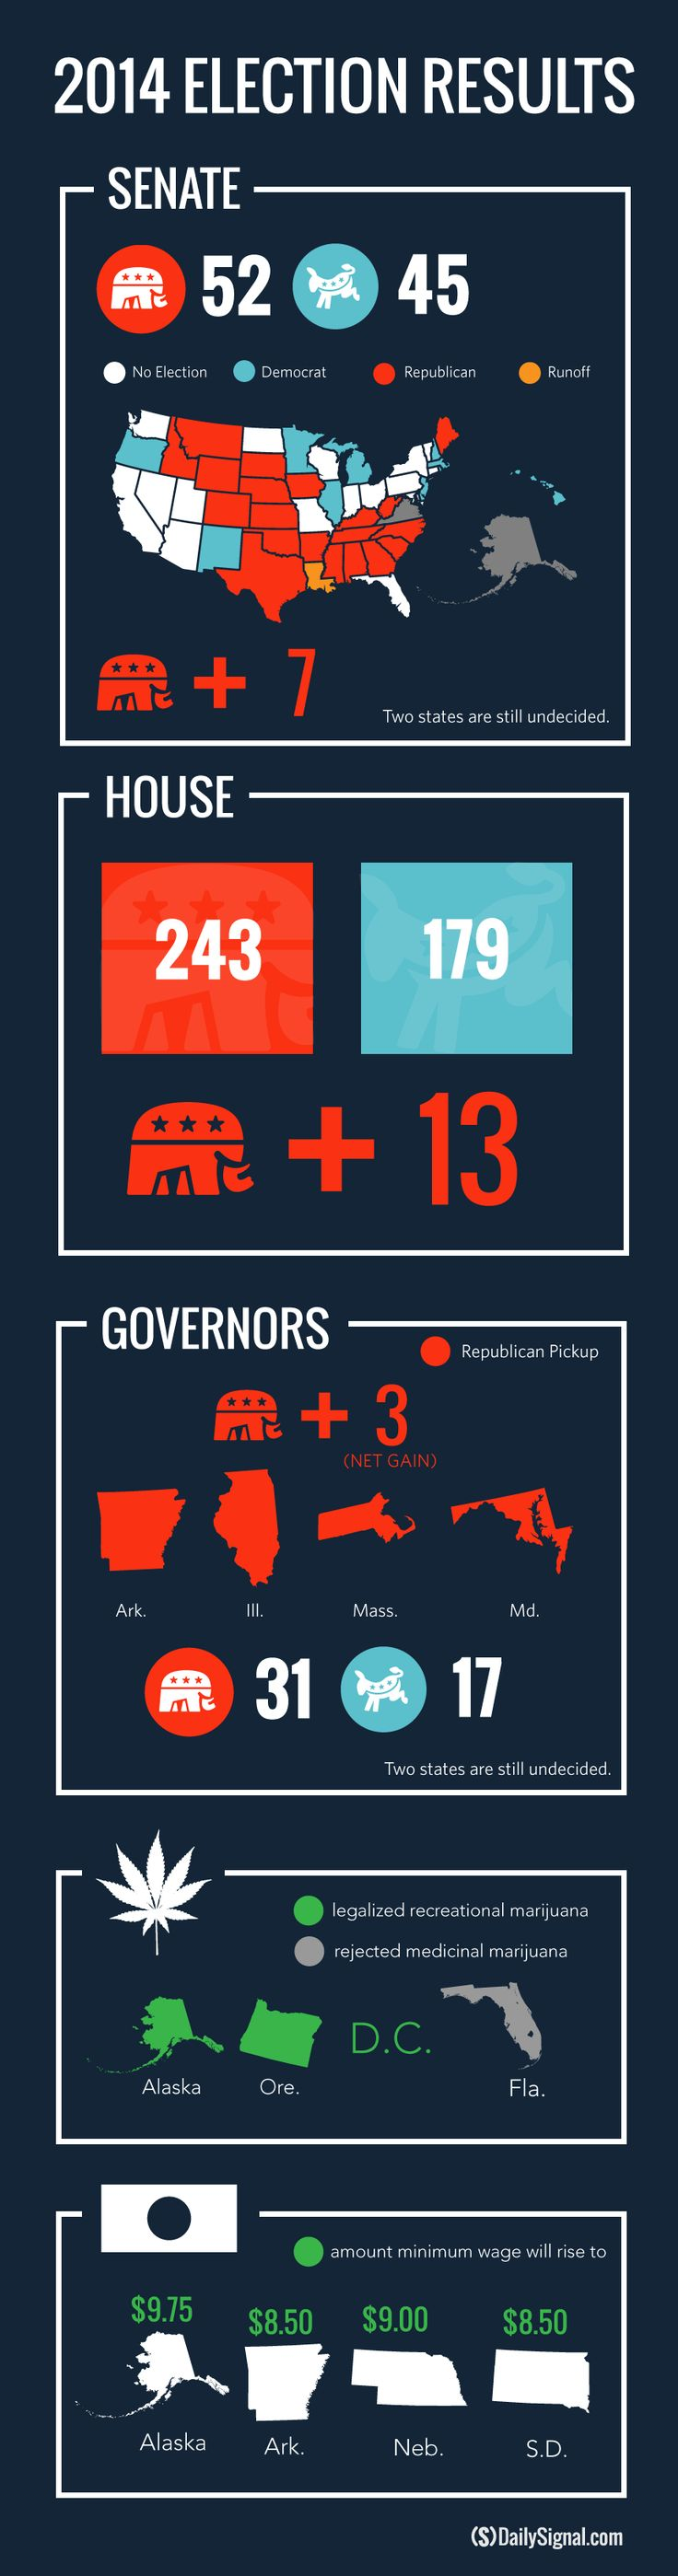 Republicans Swept the Midterm Elections. Here's What Comes Next.. Republicans' heady win on Election Day, in which they regained control of the U.S. Senate and increasedtheir majority in the House, soon will give way... Read More